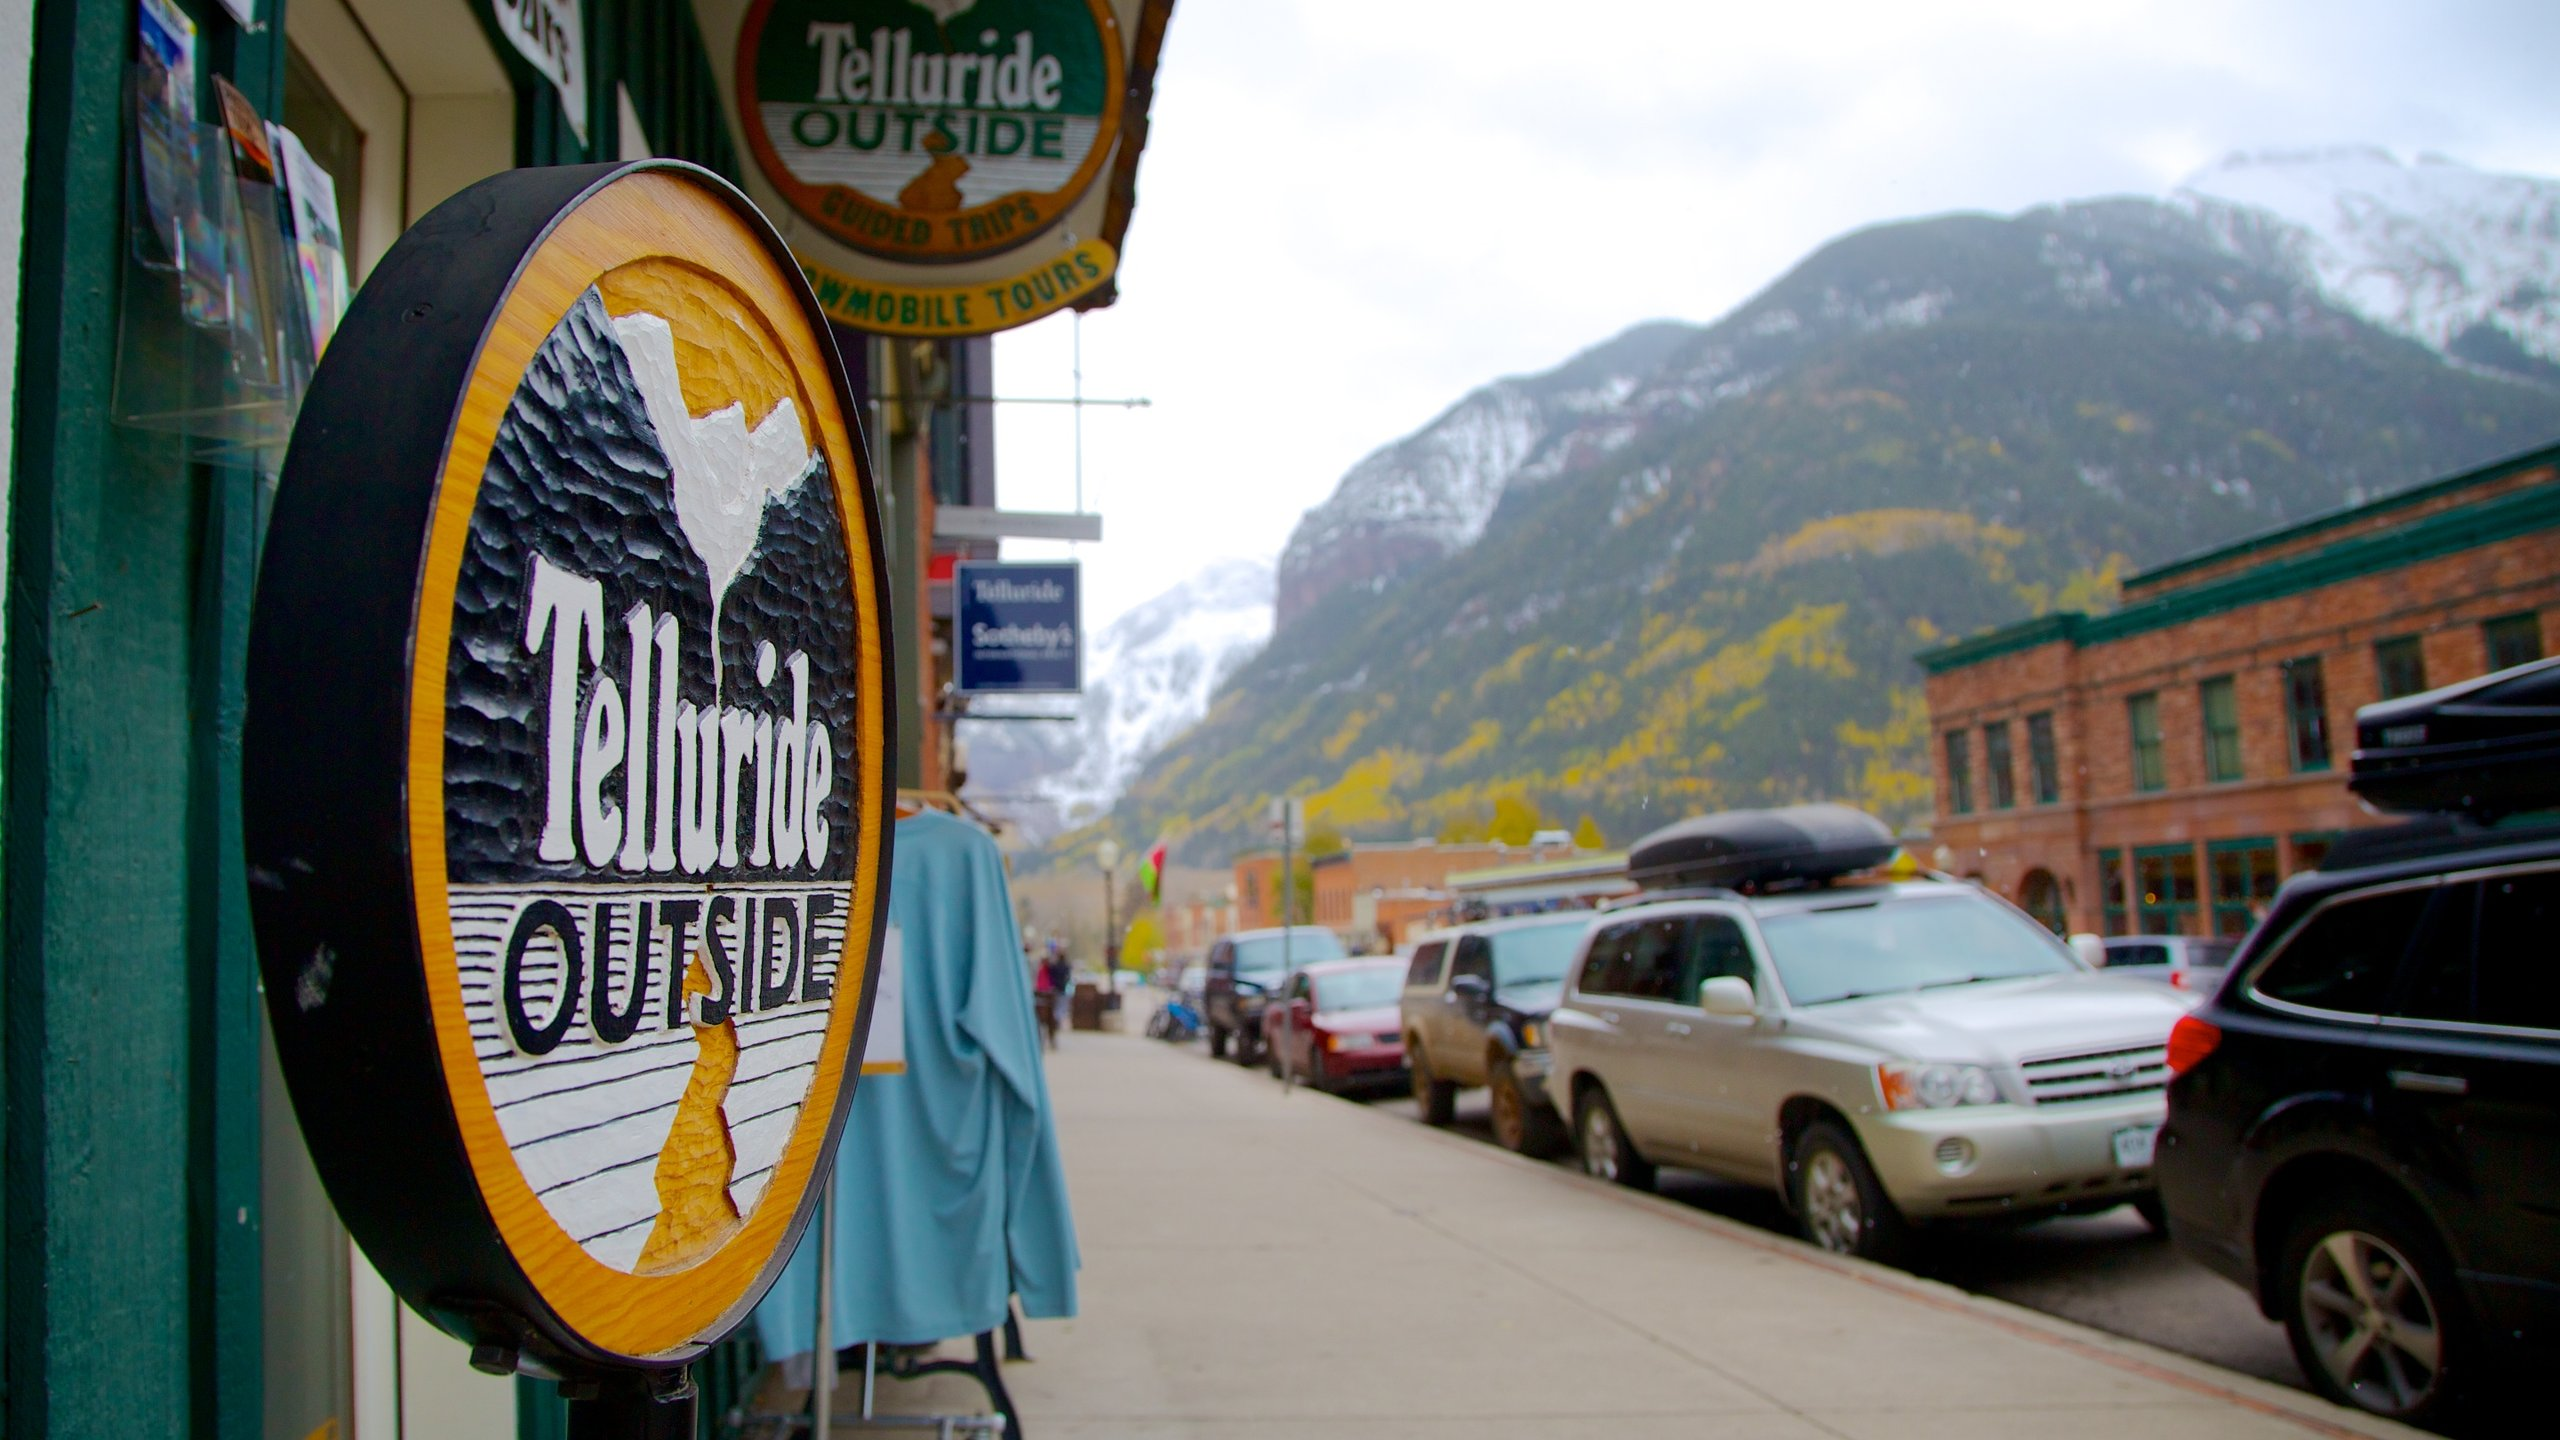 telluride hotels from 91 cheap hotel deals travelocity telluride hotels from 91 cheap hotel